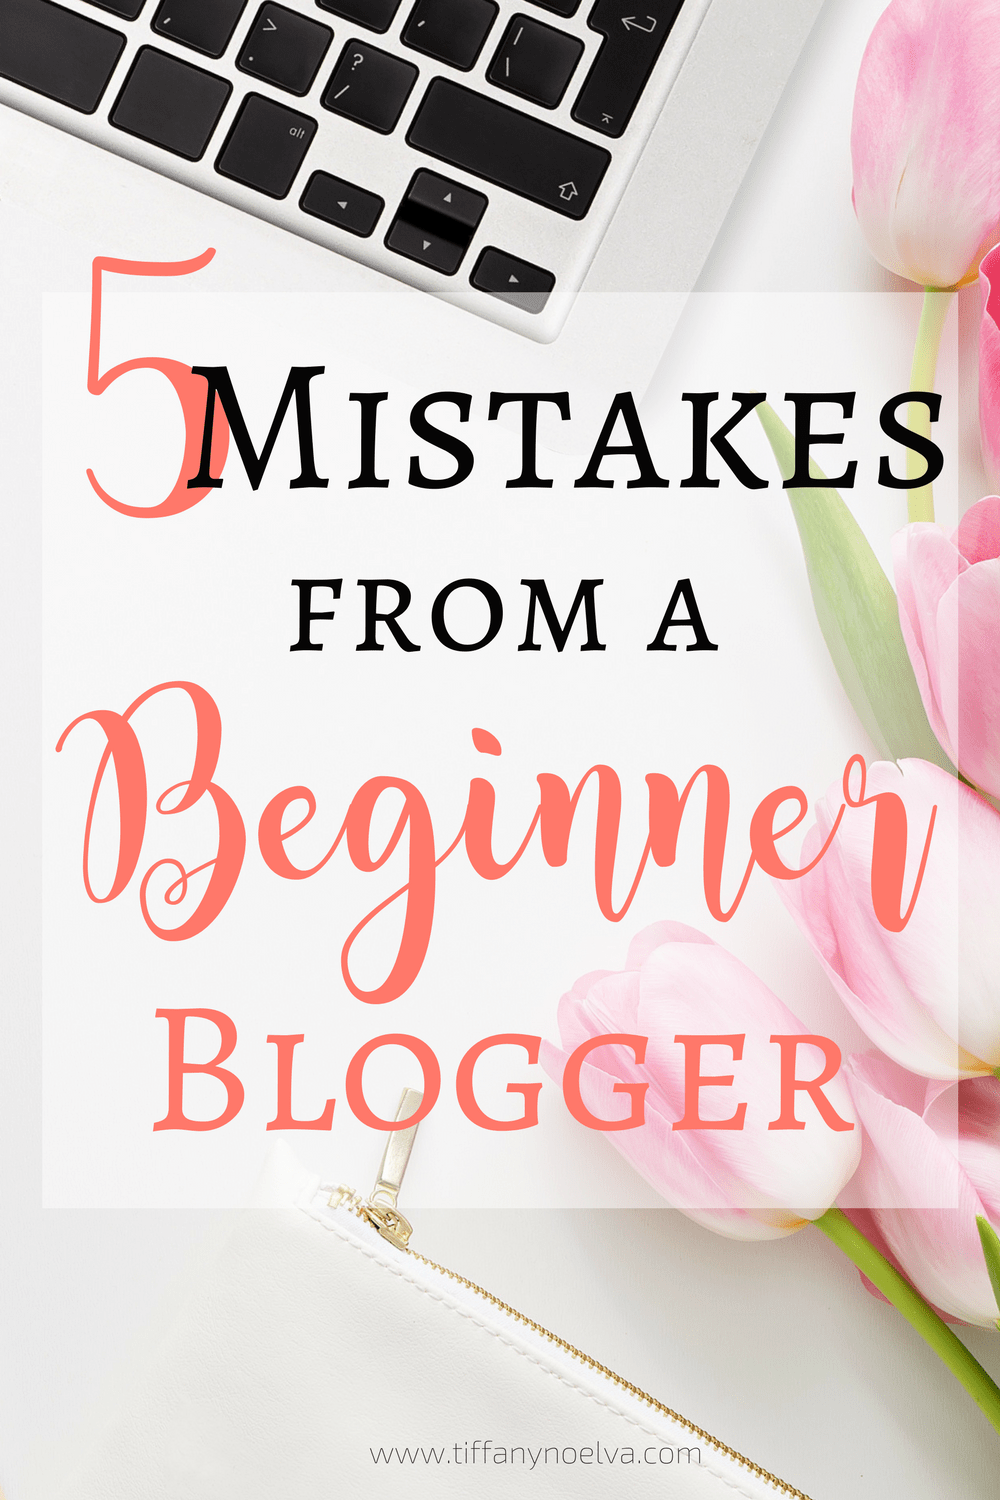 5 Mistakes from a Beginner Blogger to avoid!